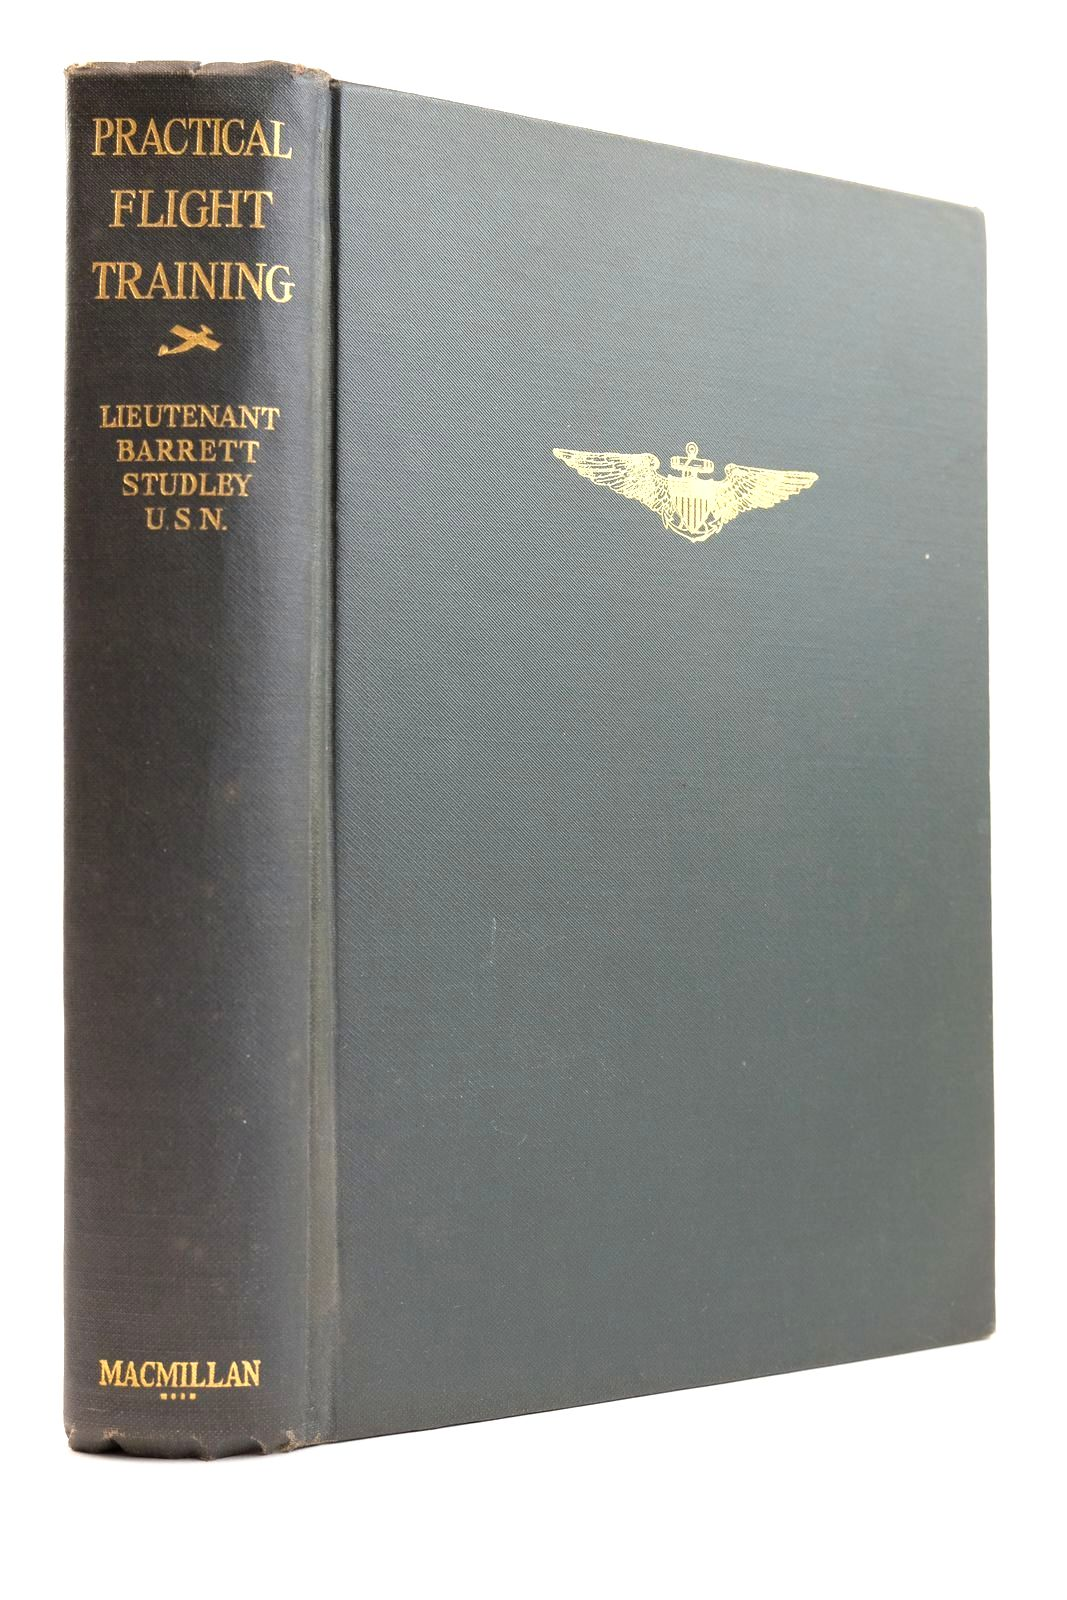 Photo of PRACTICAL FLIGHT TRAINING written by Studley, Barrett published by The Macmillan Company (STOCK CODE: 2132181)  for sale by Stella & Rose's Books